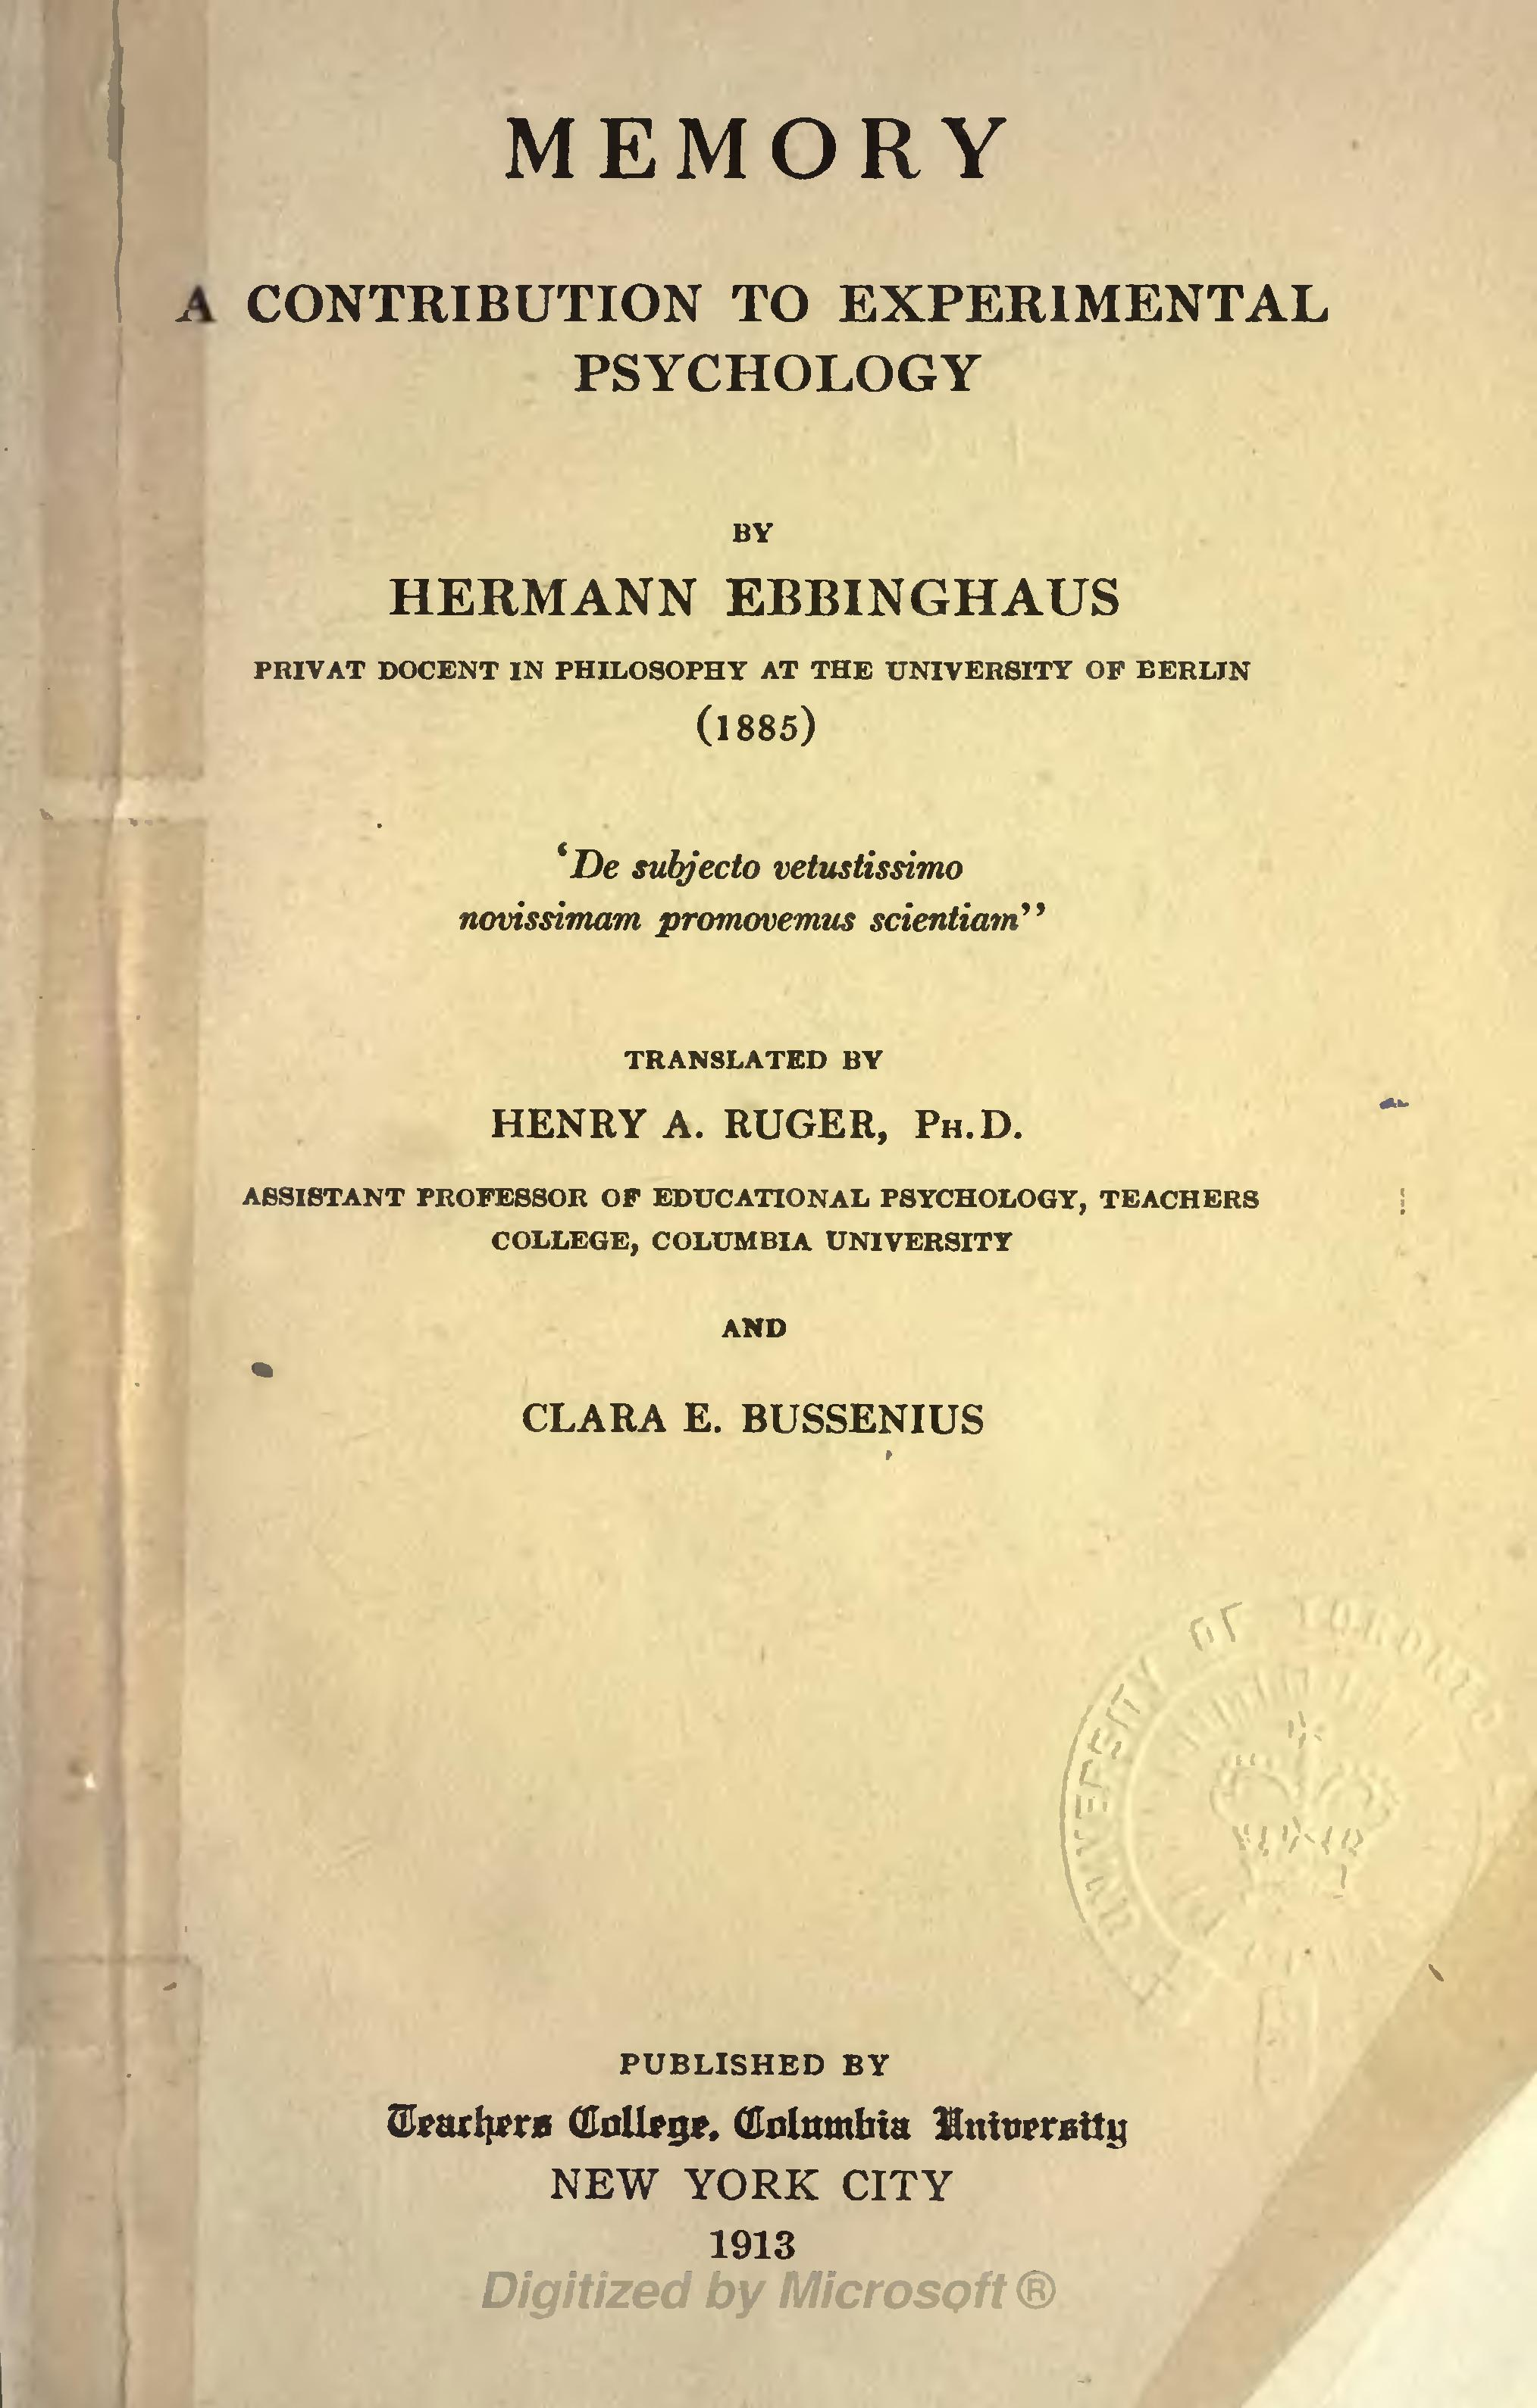 hermann ebbinghaus biography and studies What was hermann ebbinghaus's contribution to the study of memory in ebbinghaus's studies of memorization of nonsense syllables, who did the memorizing.